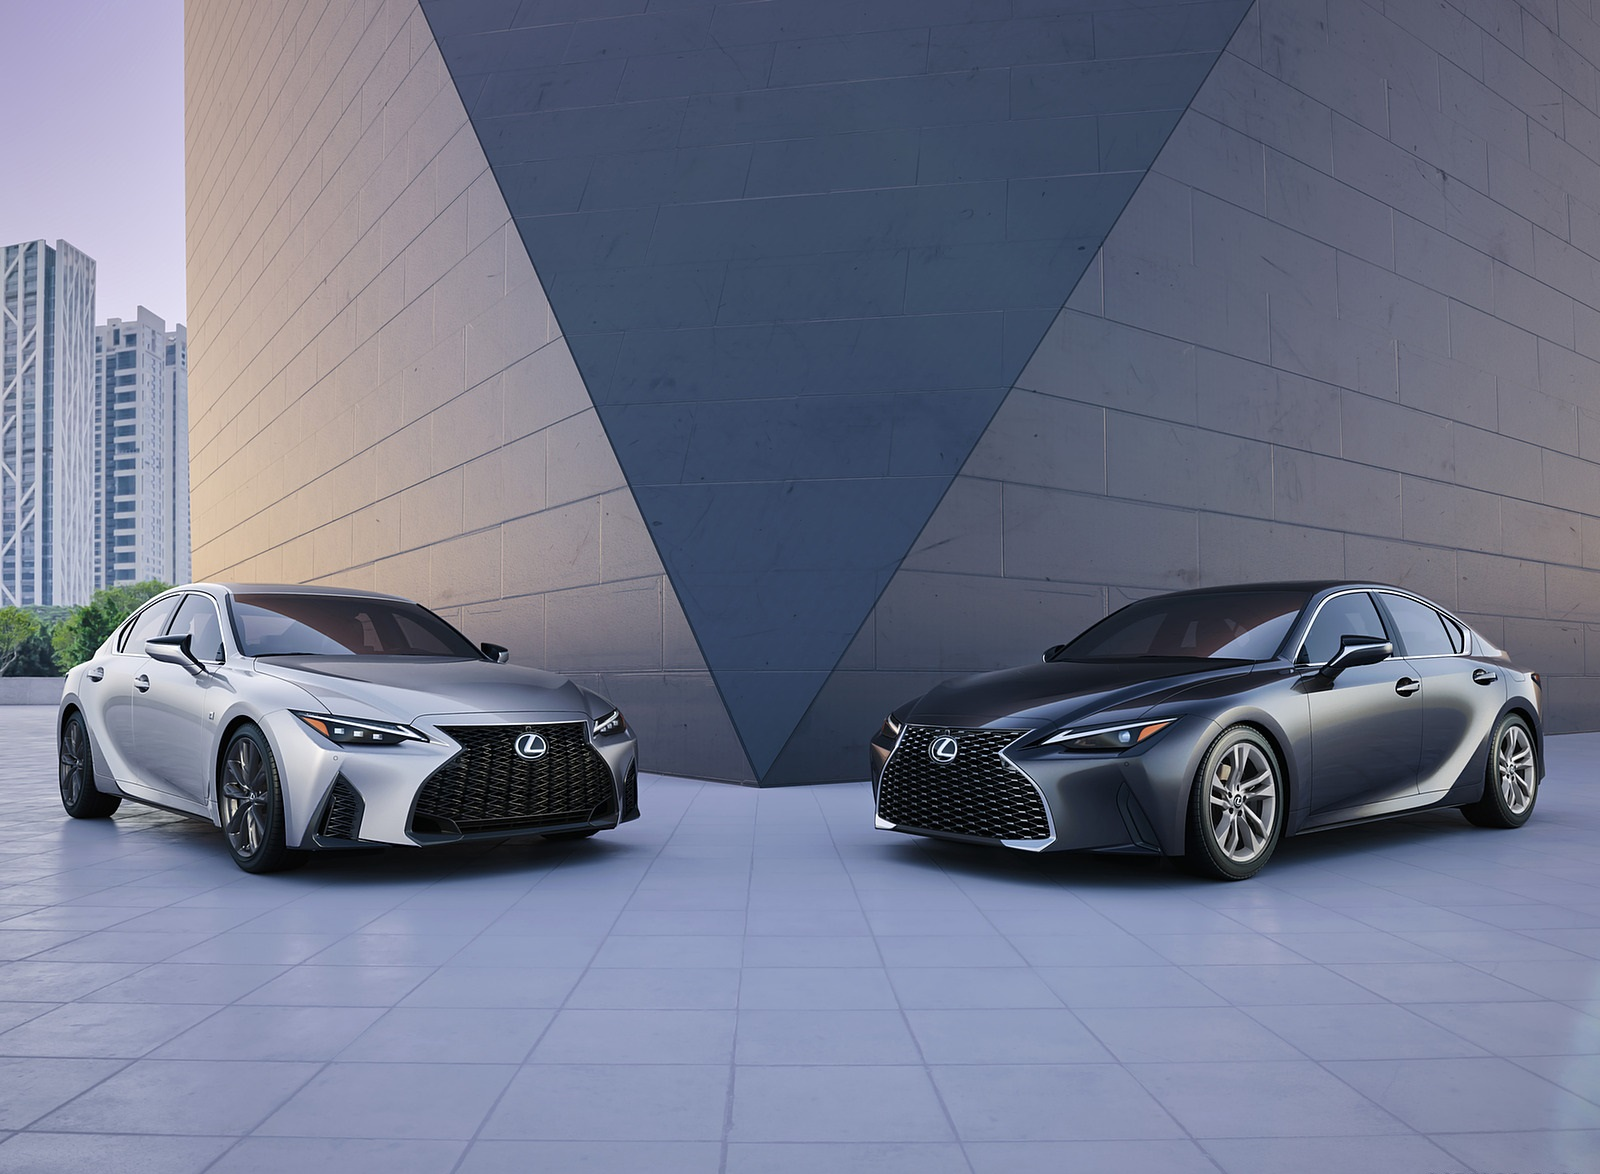 2021 Lexus IS Wallpapers (2)